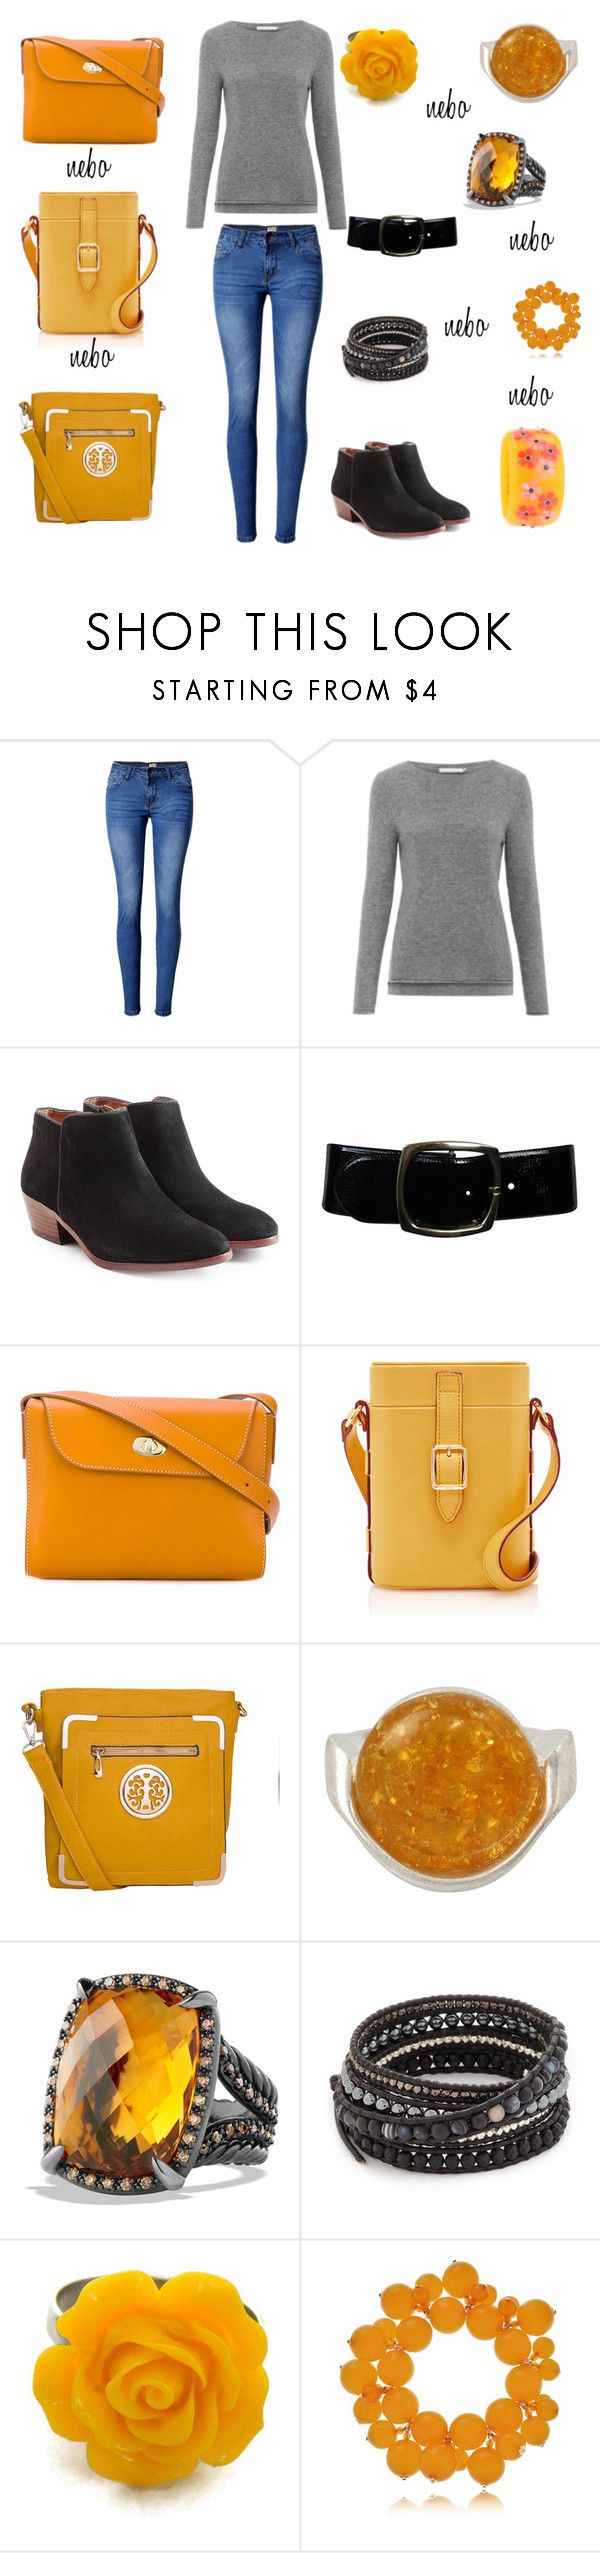 """style 7"" by jana-harp on Polyvore featuring WithChic, Les 100 Ciels, Sam Edelman, Chanel, Alexandre Mareuil, MKF Collection, Robert Lee Morris, David Yurman, Chan Luu and Kenneth Jay Lane"